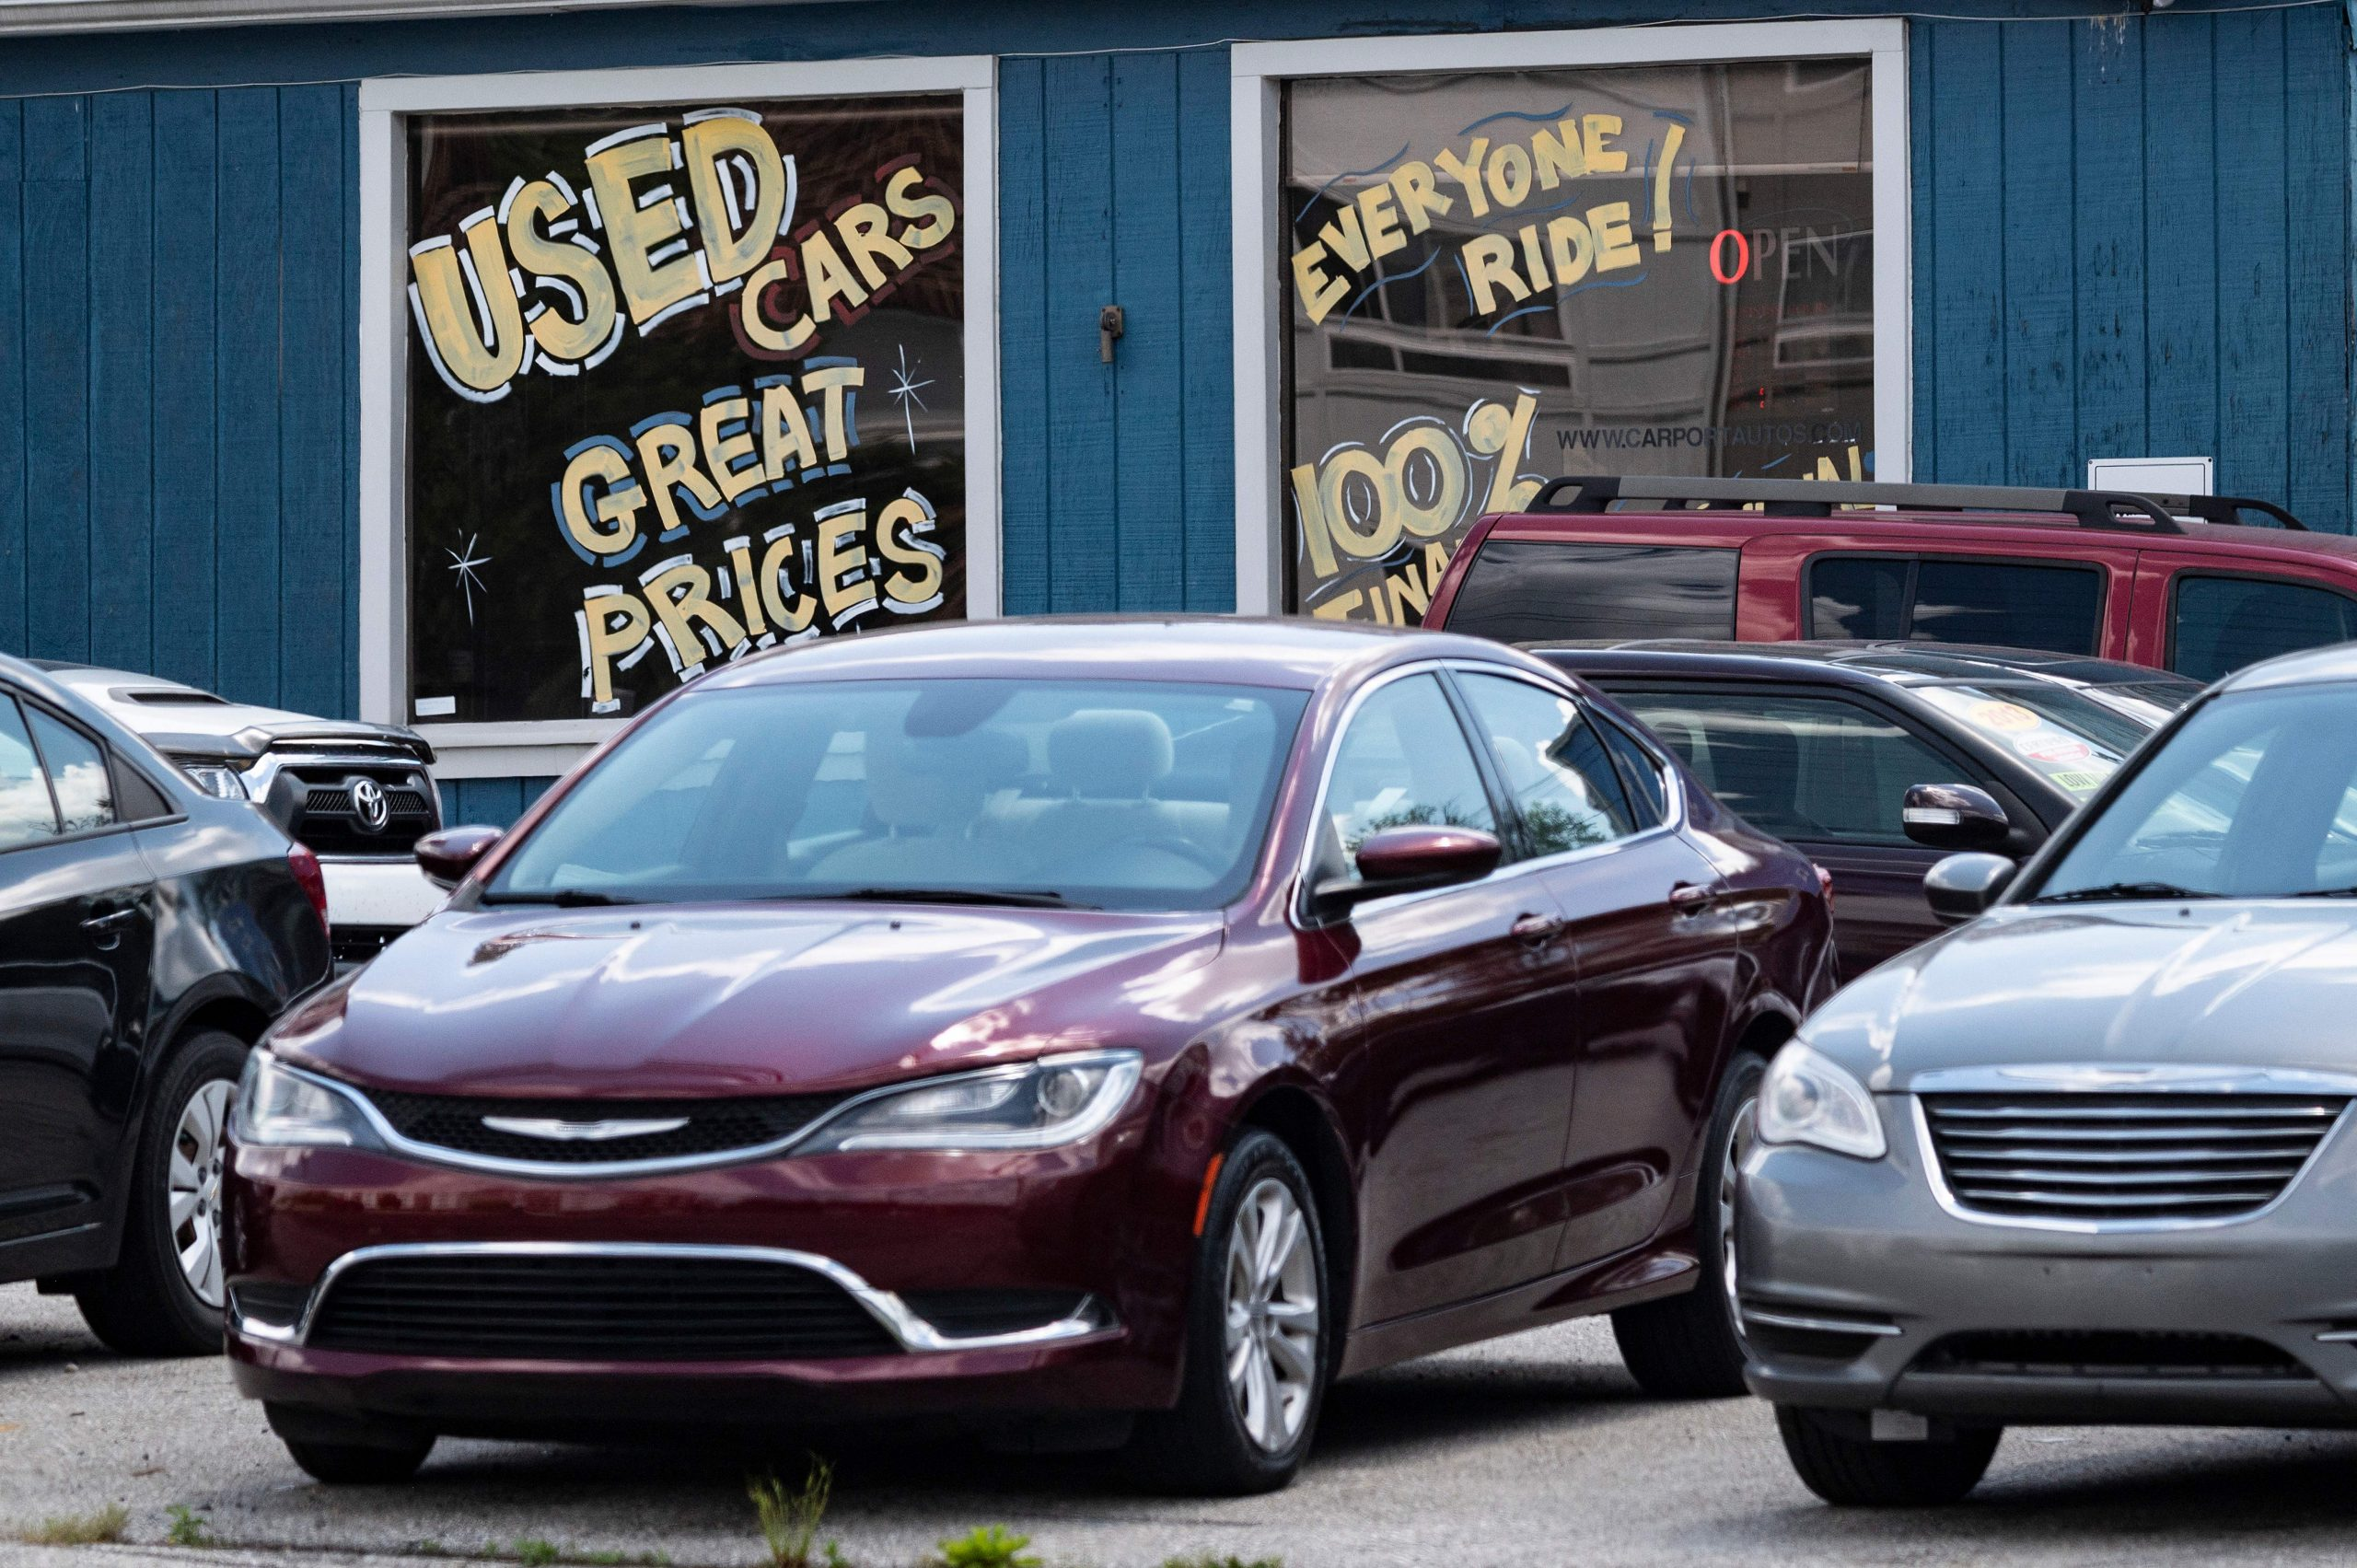 Used car prices have surged. How to make that work to your advantage